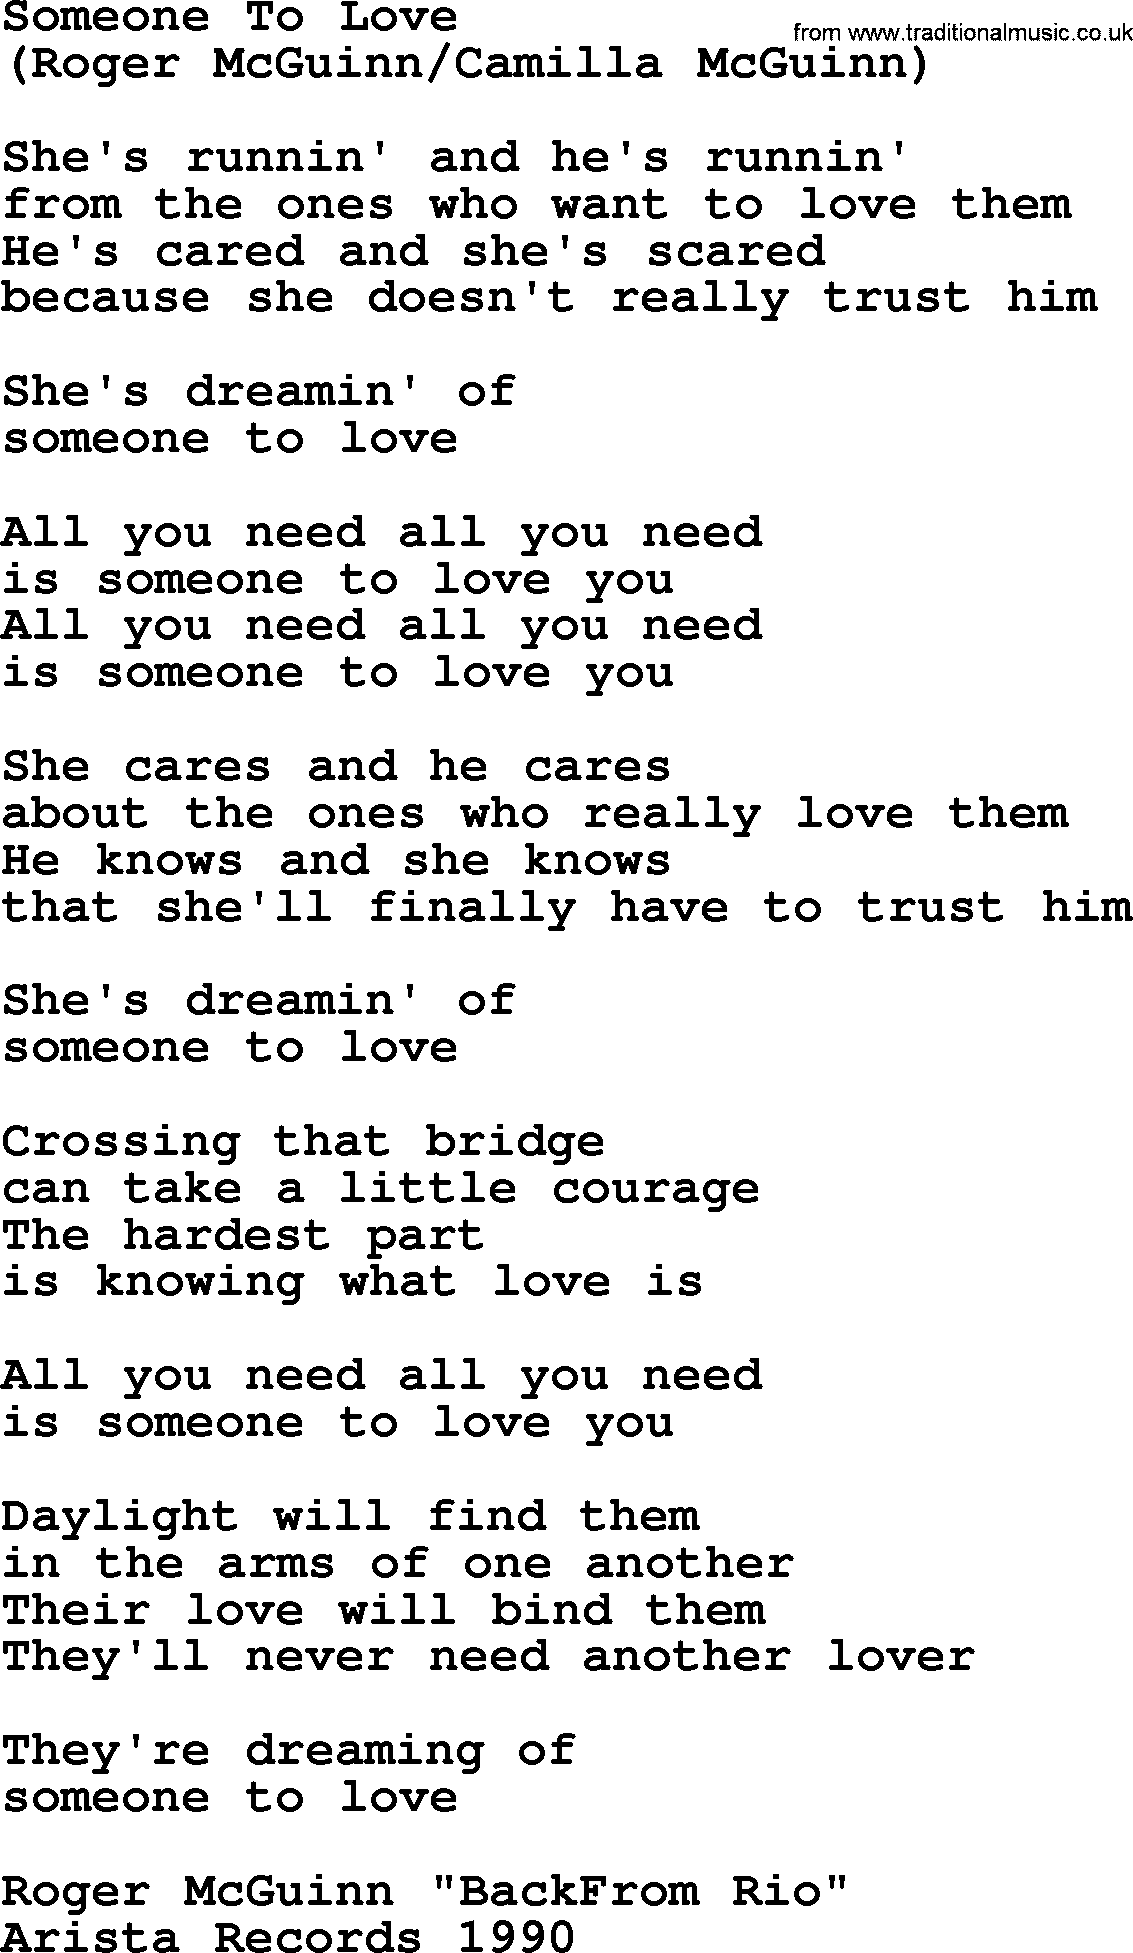 Someone To Love, by The Byrds - lyrics with pdf